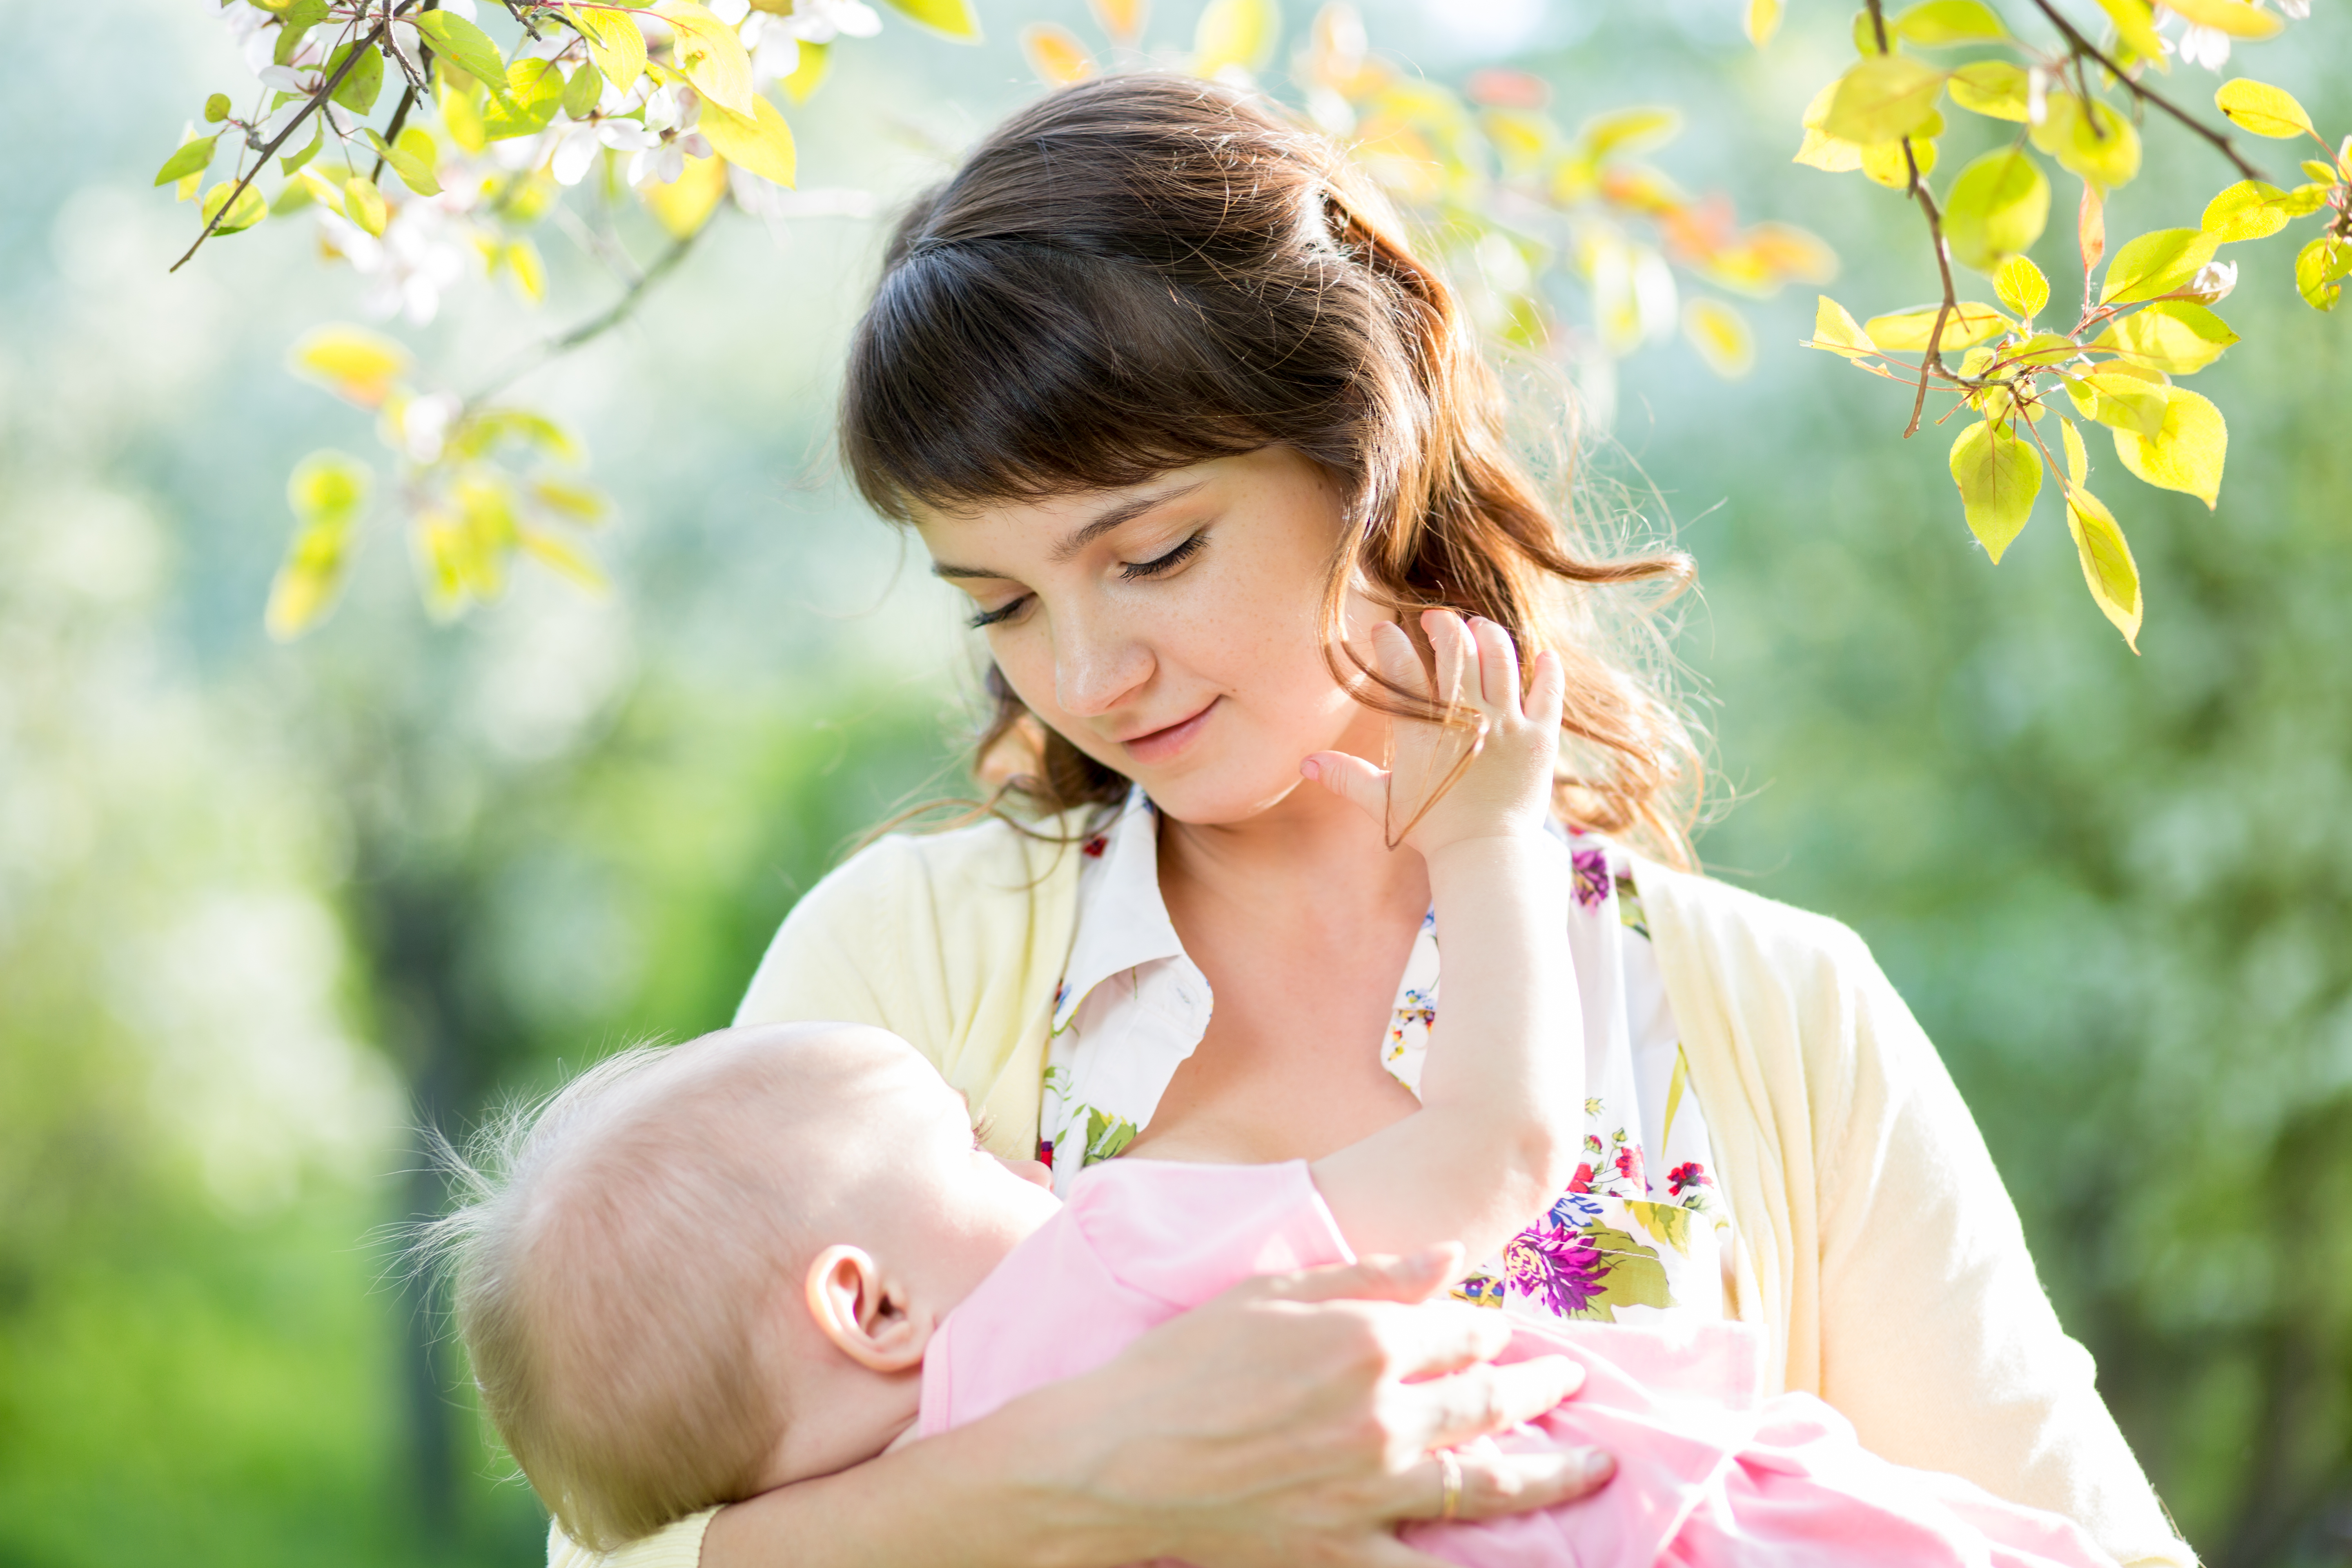 Breastfeeding Infant For More Than 6 Months Linked To ...